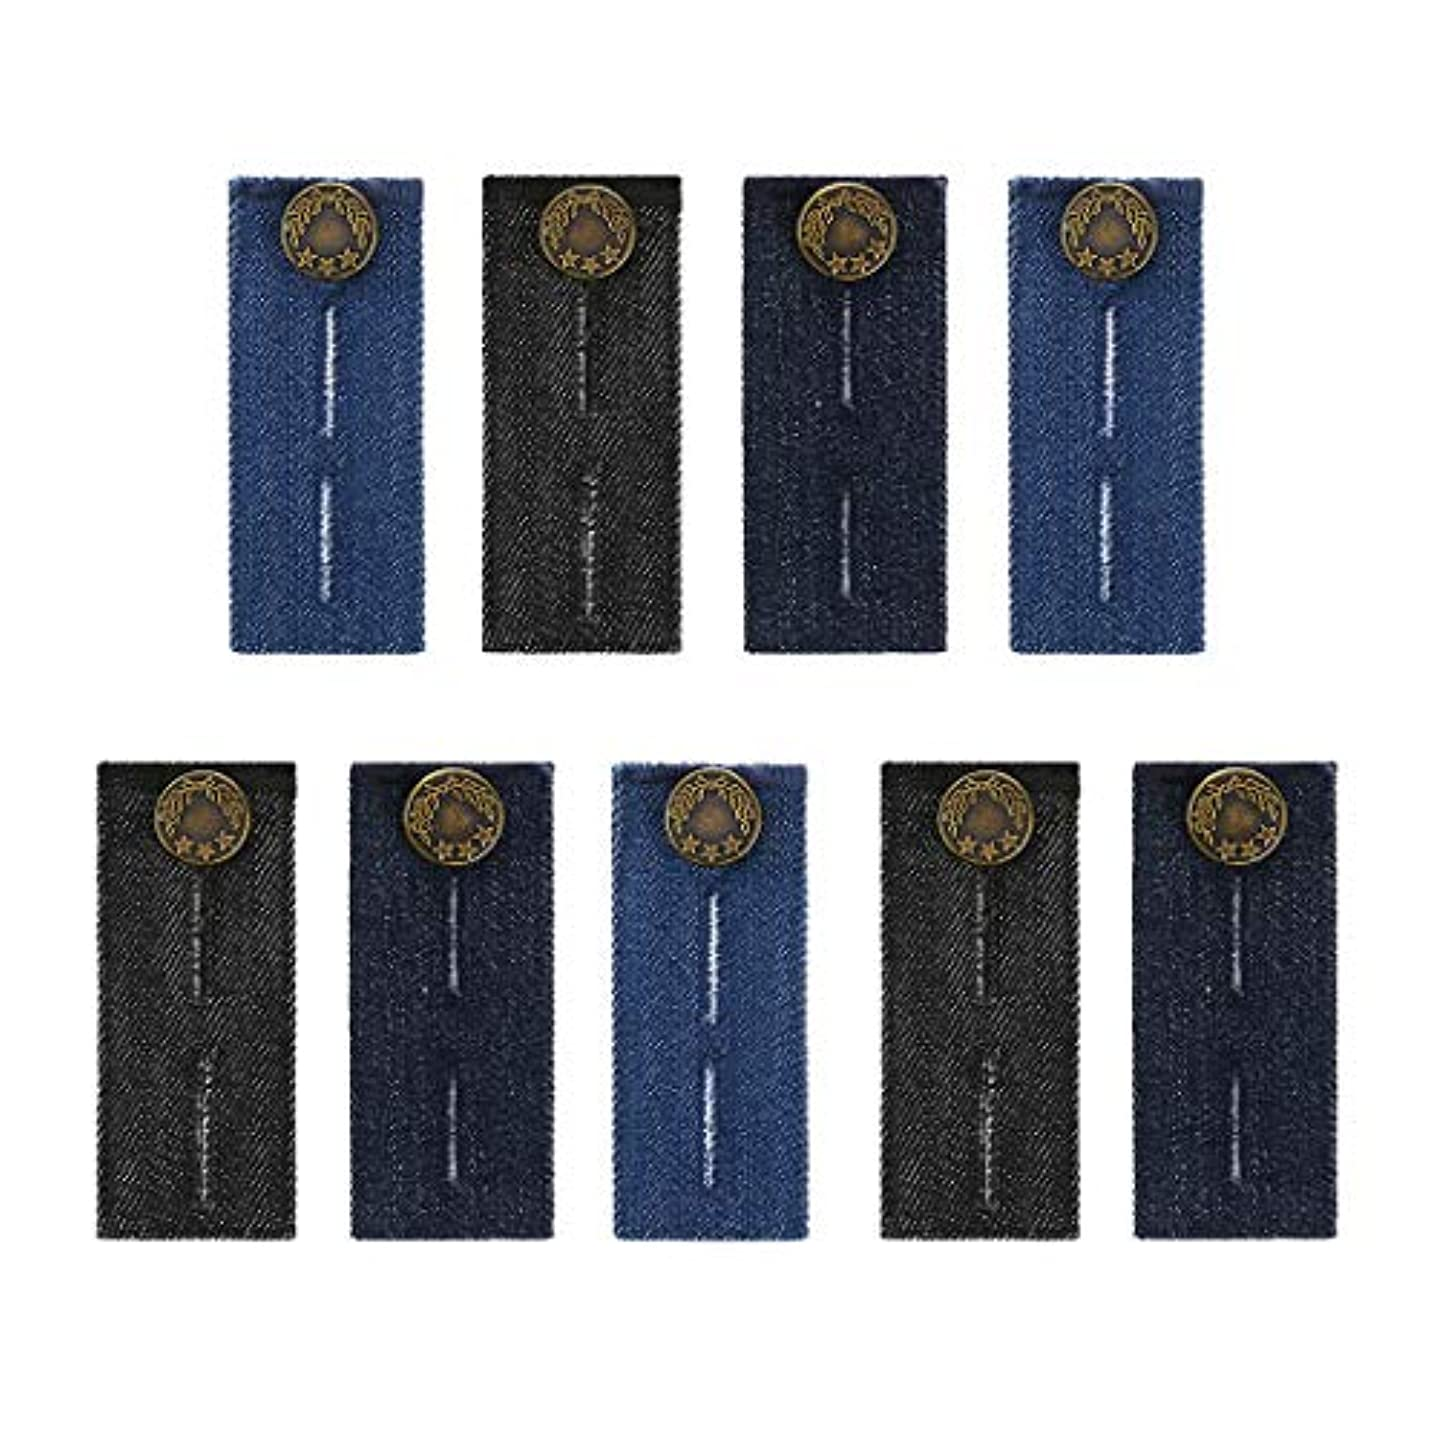 Waist Extenders with Metal Buttons for Pants, Jeans, Trousers and Skirt, Waistband Extenders for Men, Pregnant Women 9 Pack